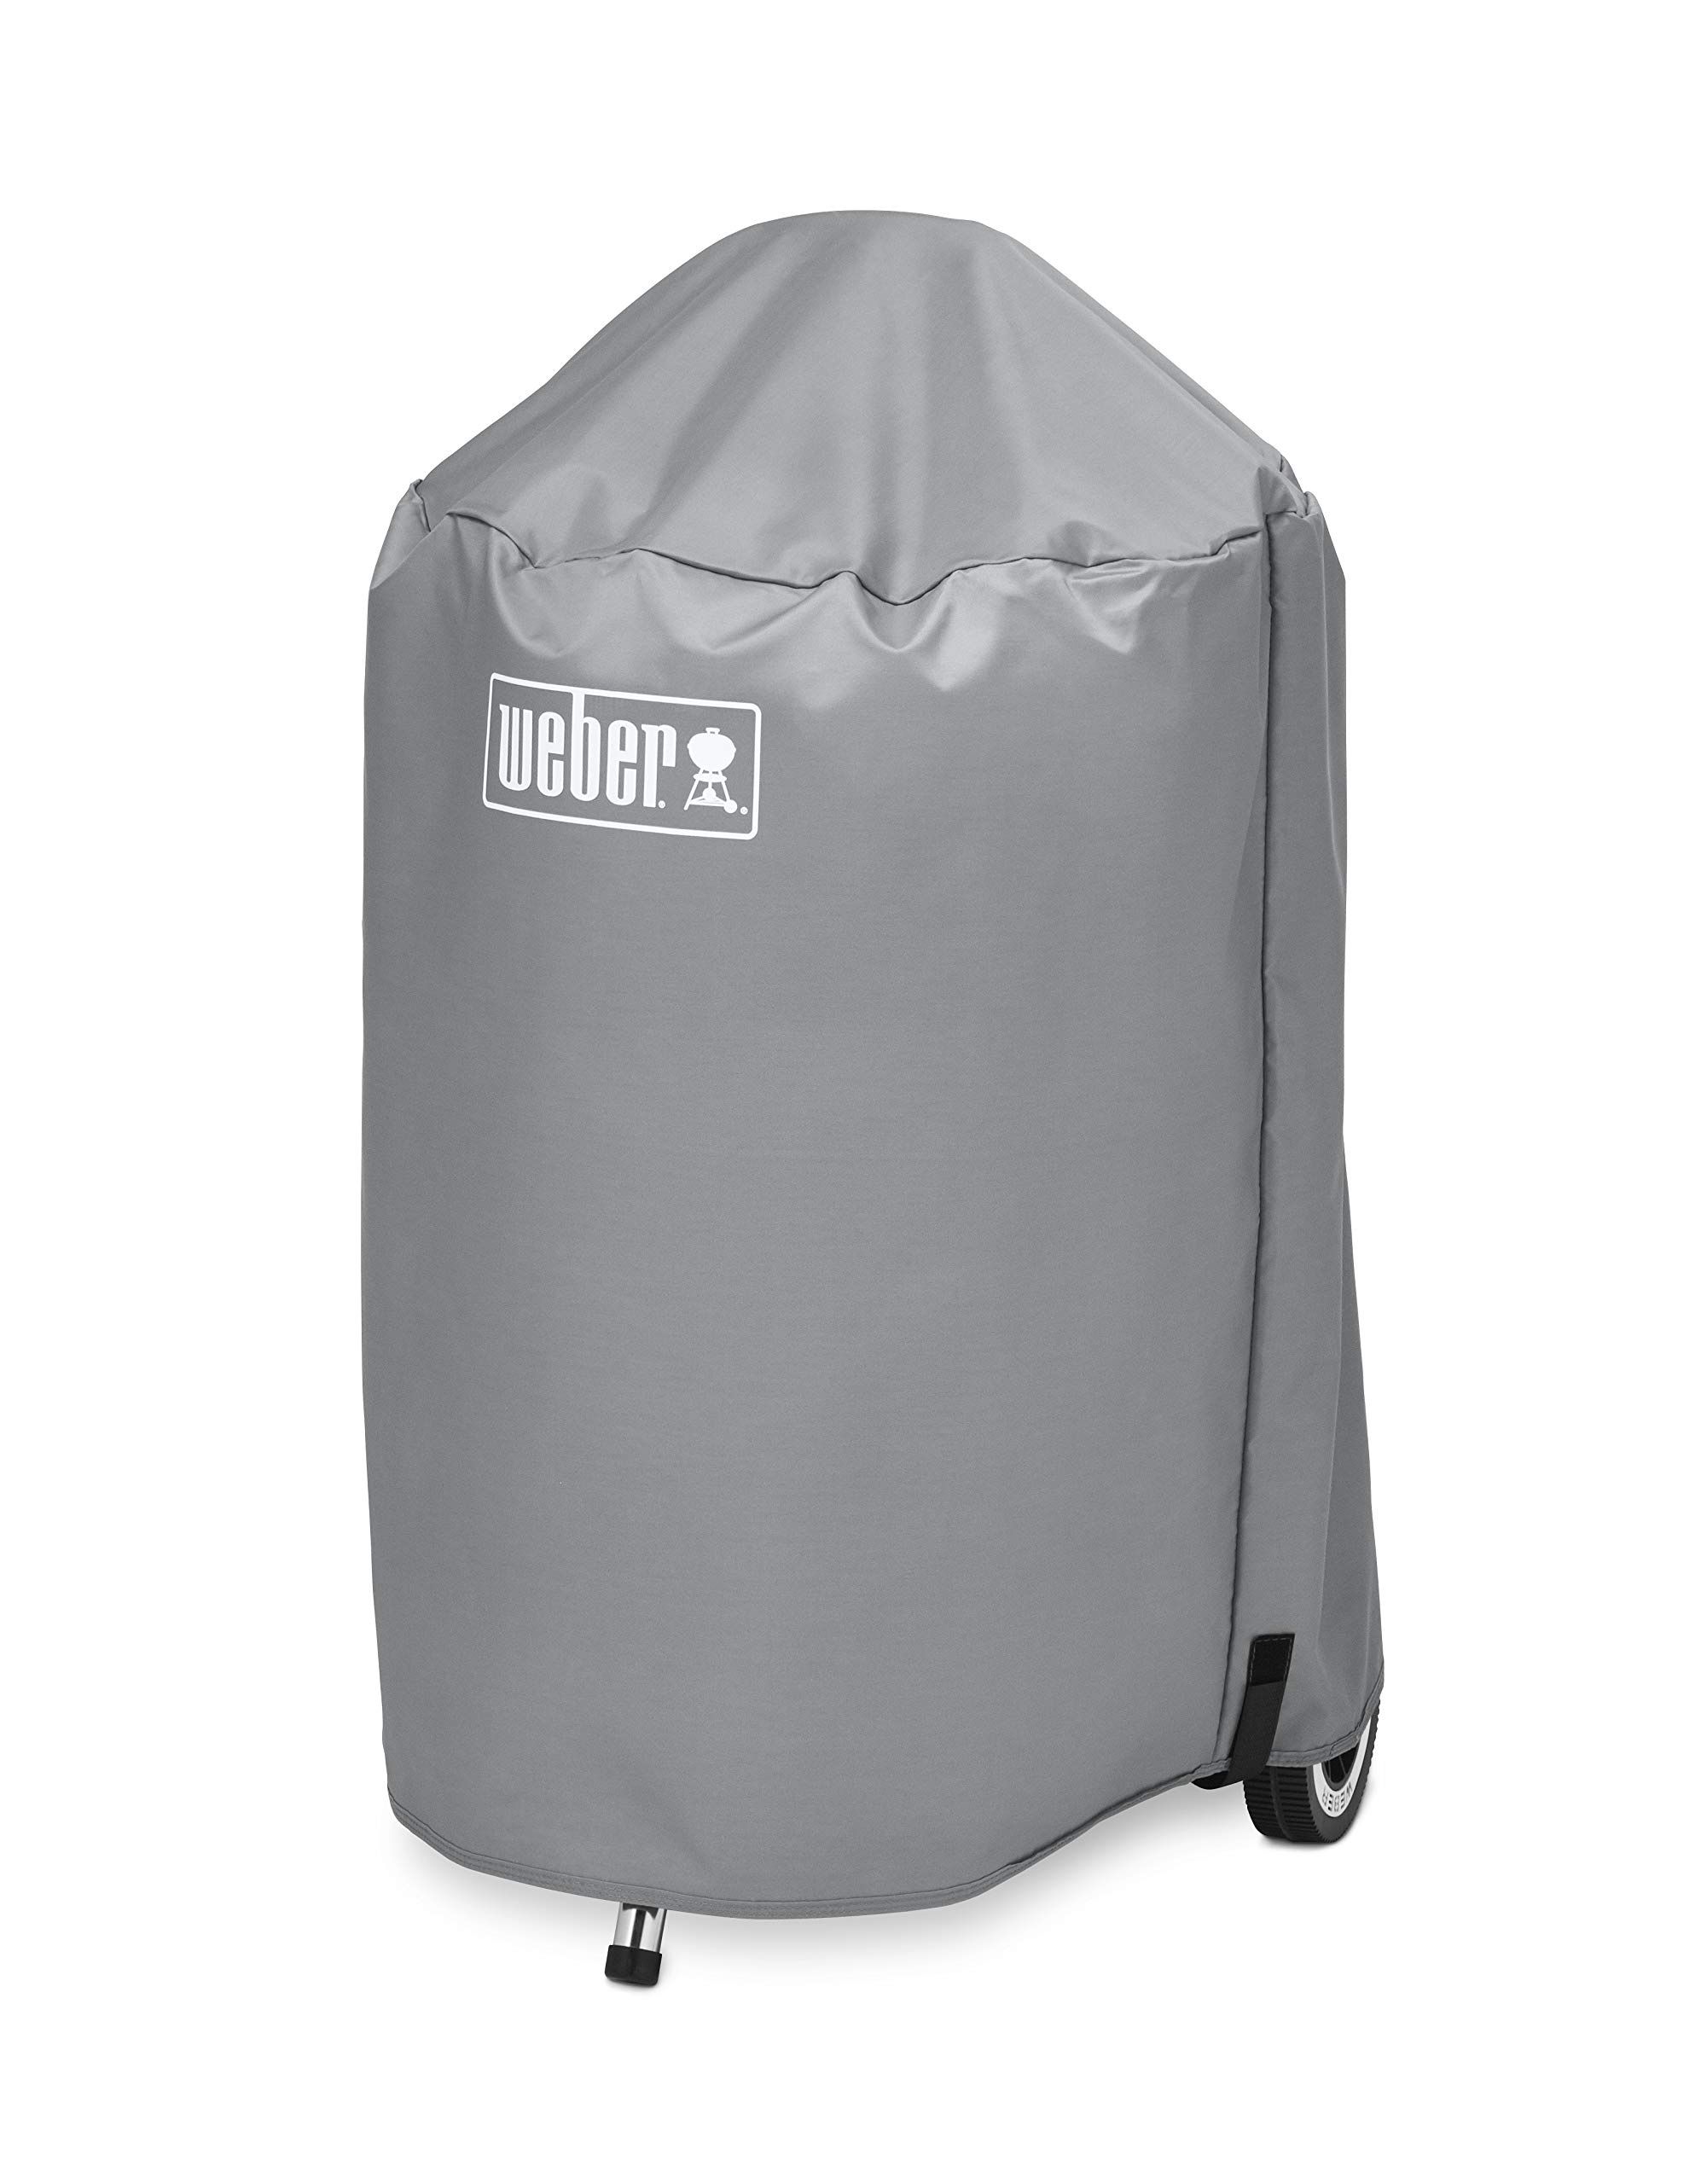 Weber Available 7175 18 Inch Charcoal Kettle Grill Cover by Weber